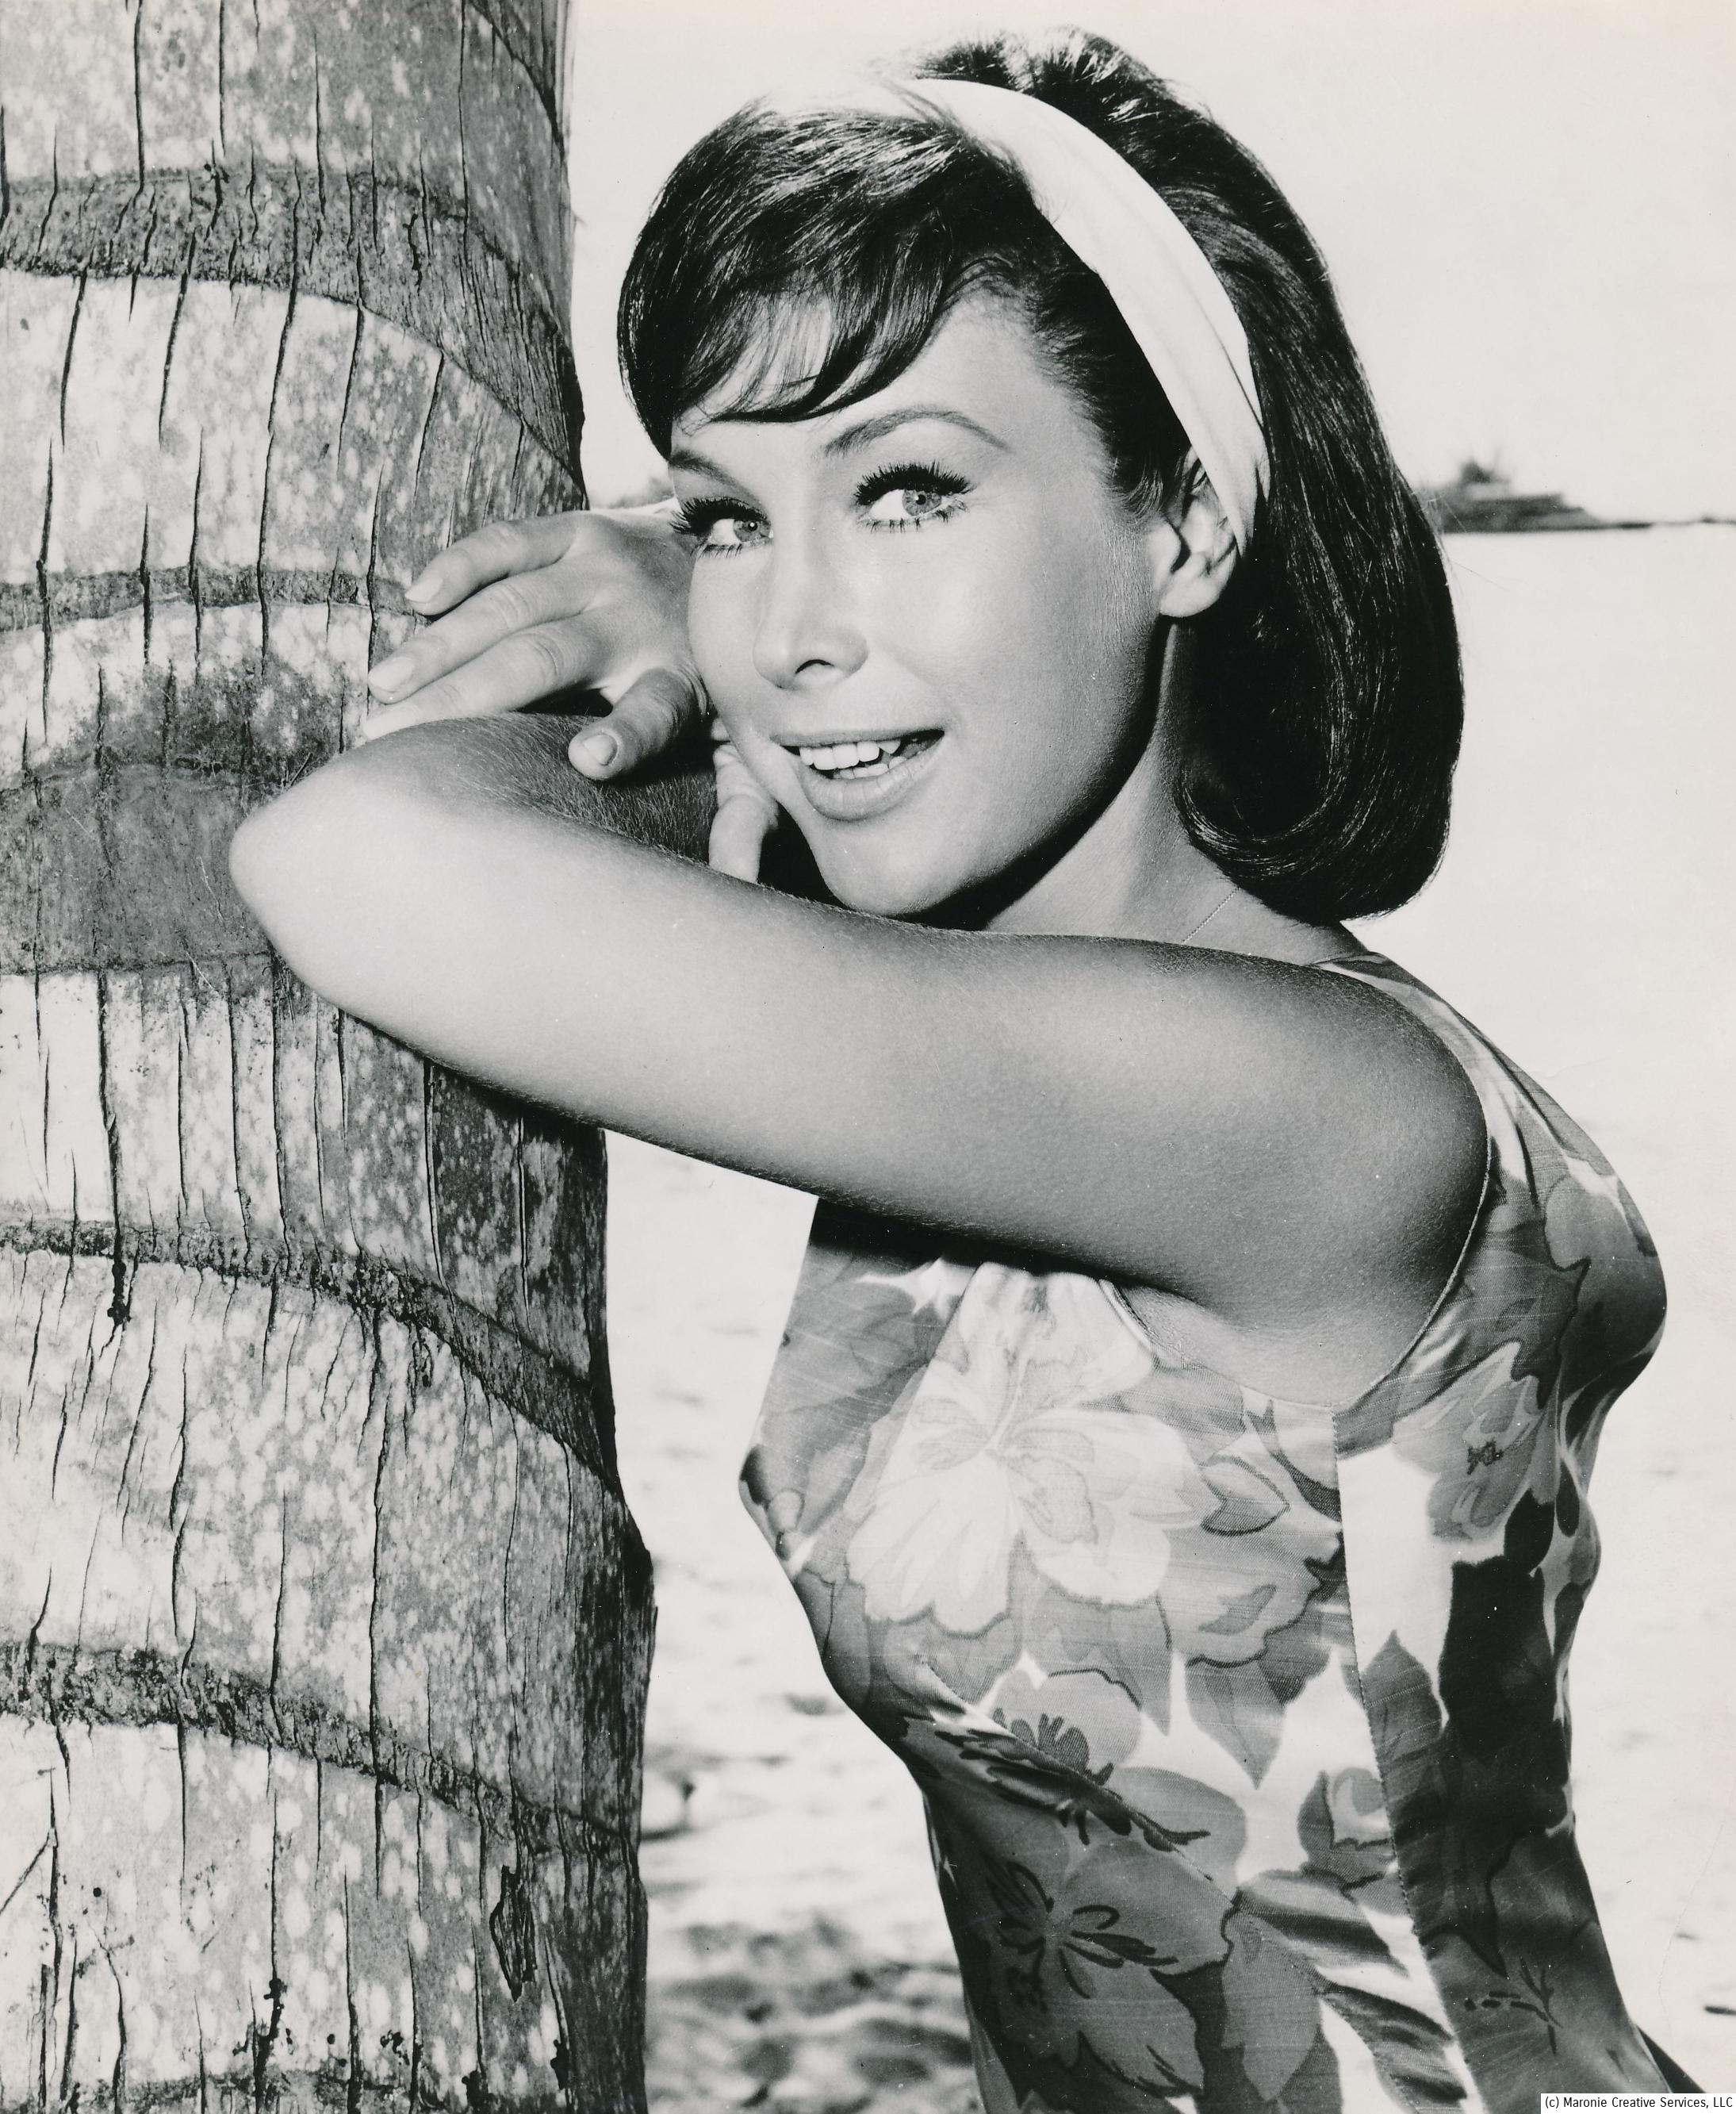 A rare photo of a brunette Barbara Eden, as she was seen in the 1964 film, Ride the Wild Surf, co-starring Tab Hunter. By this time Eden was a veteran of many movies and TV appearances. (c) Columbia Pictures.